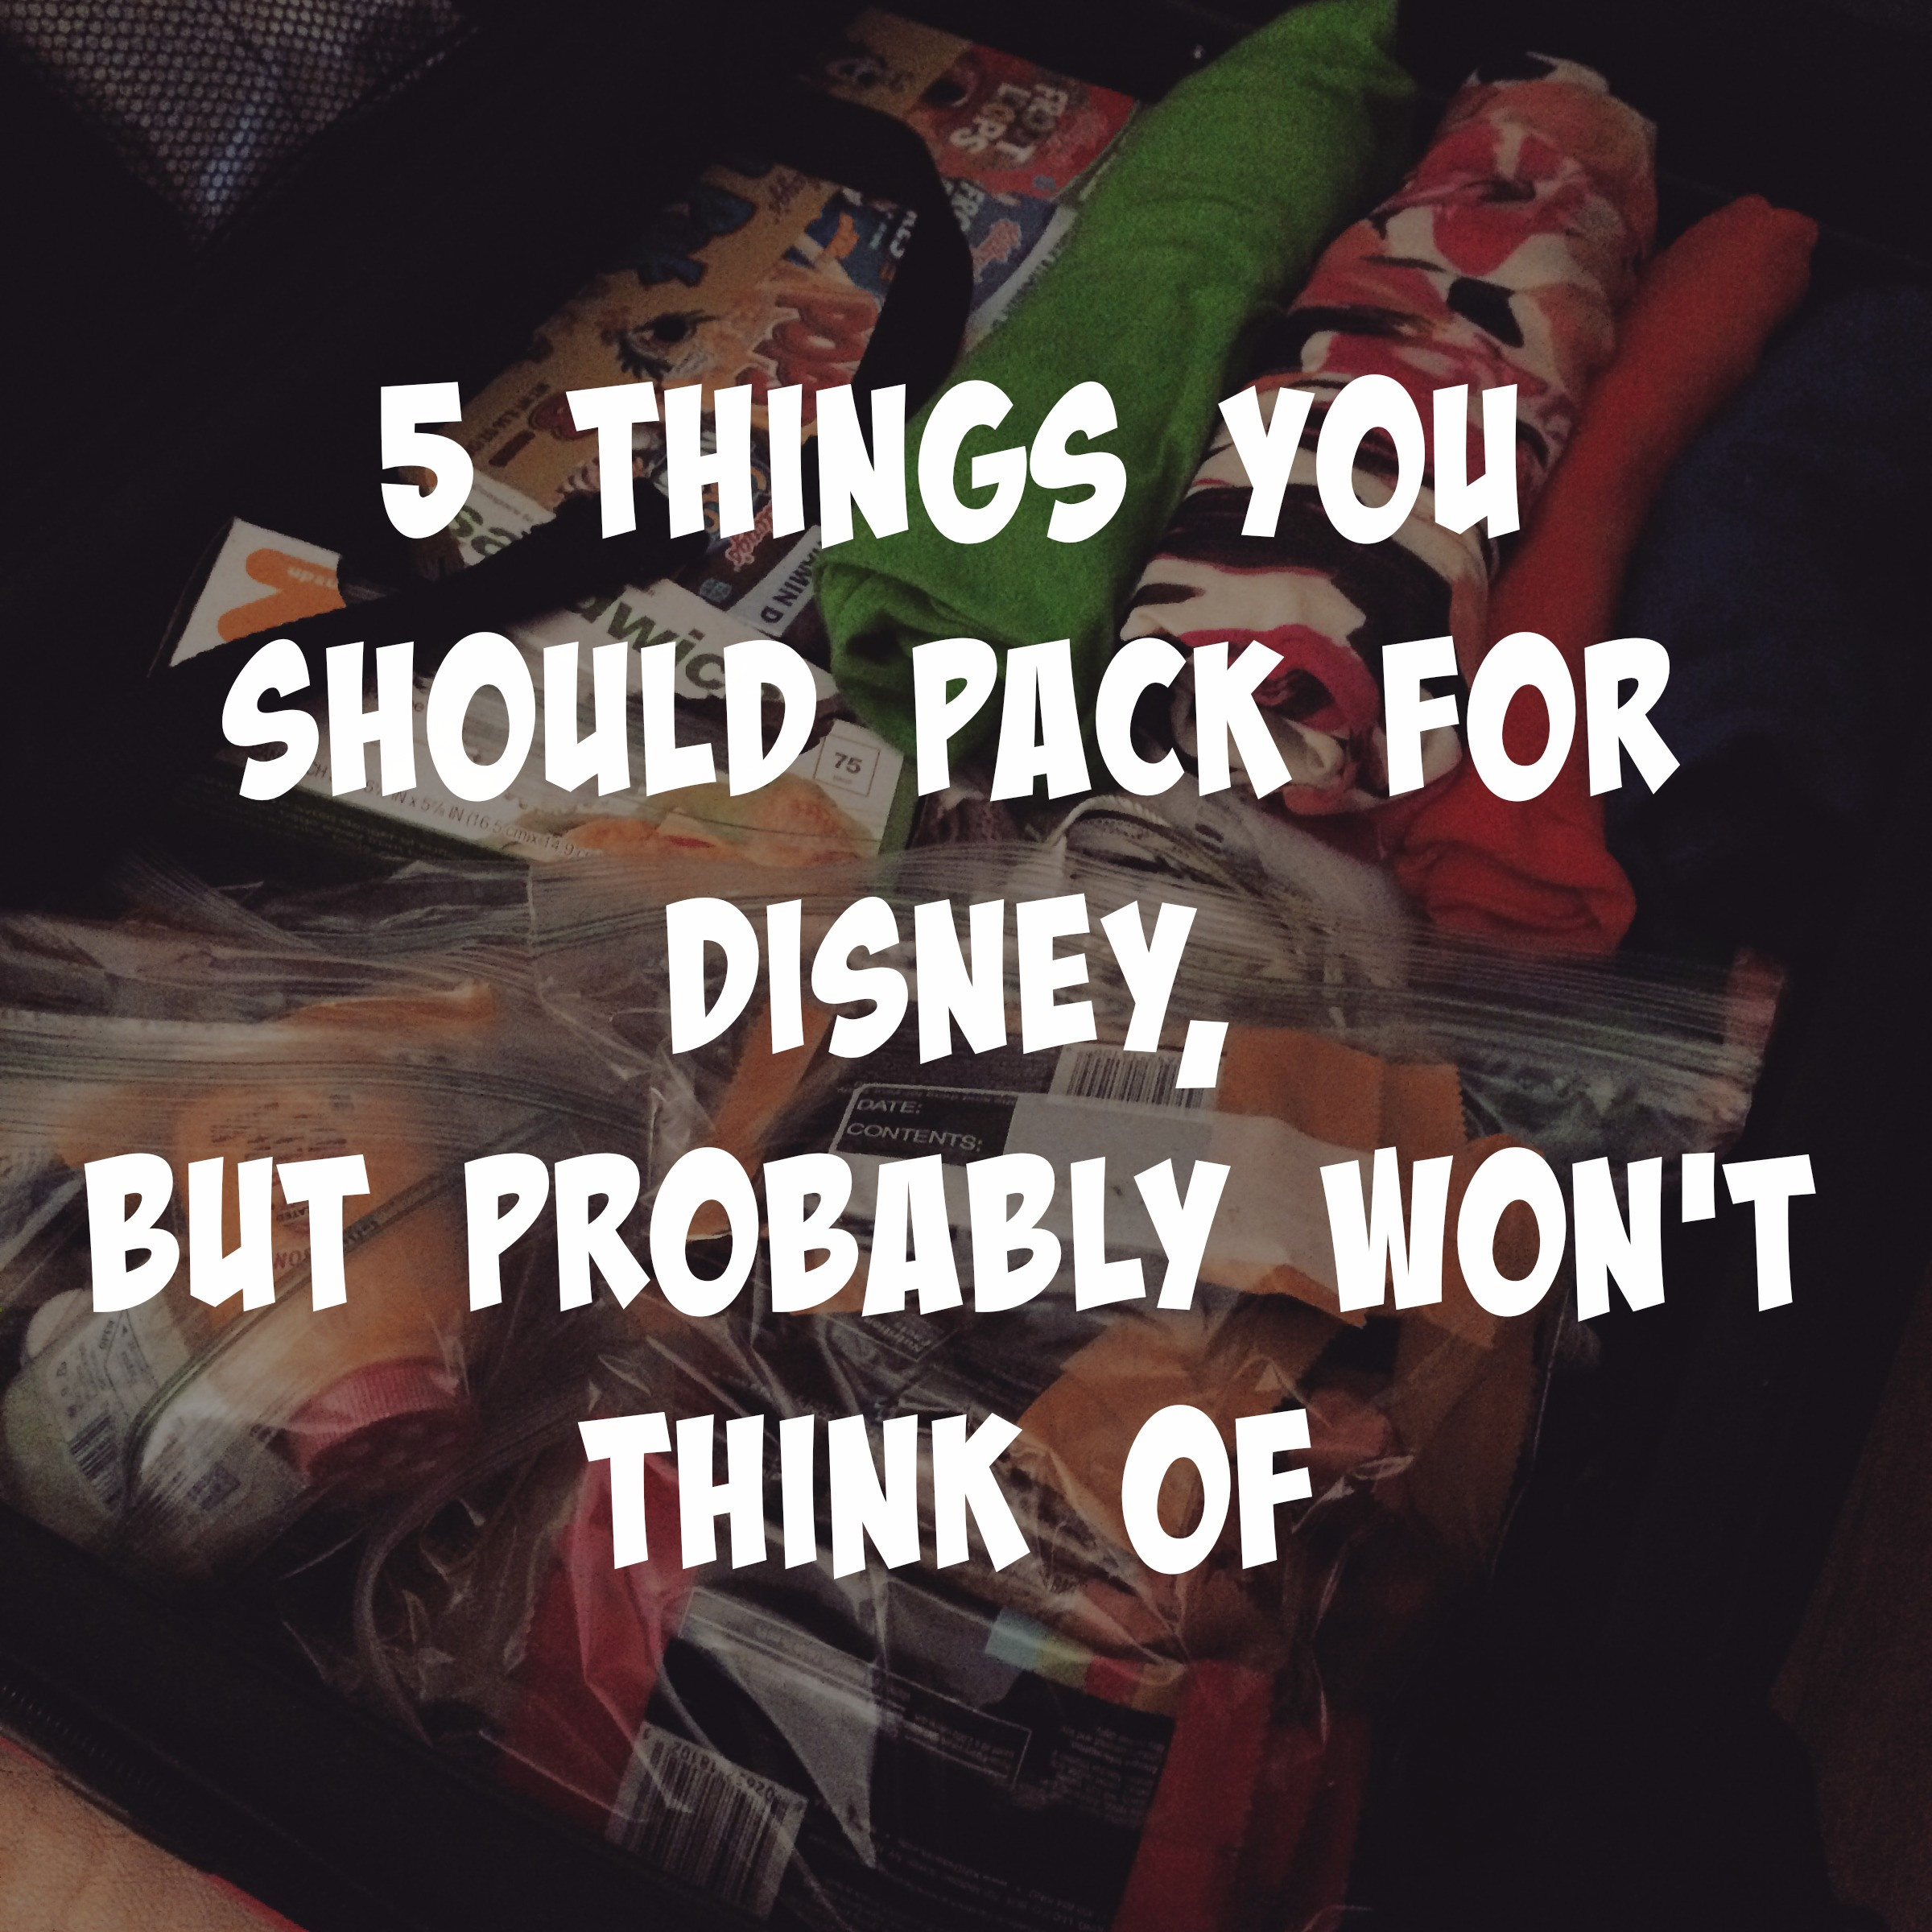 5 Things You Should Pack for Disney, But Probably Won't Think Of